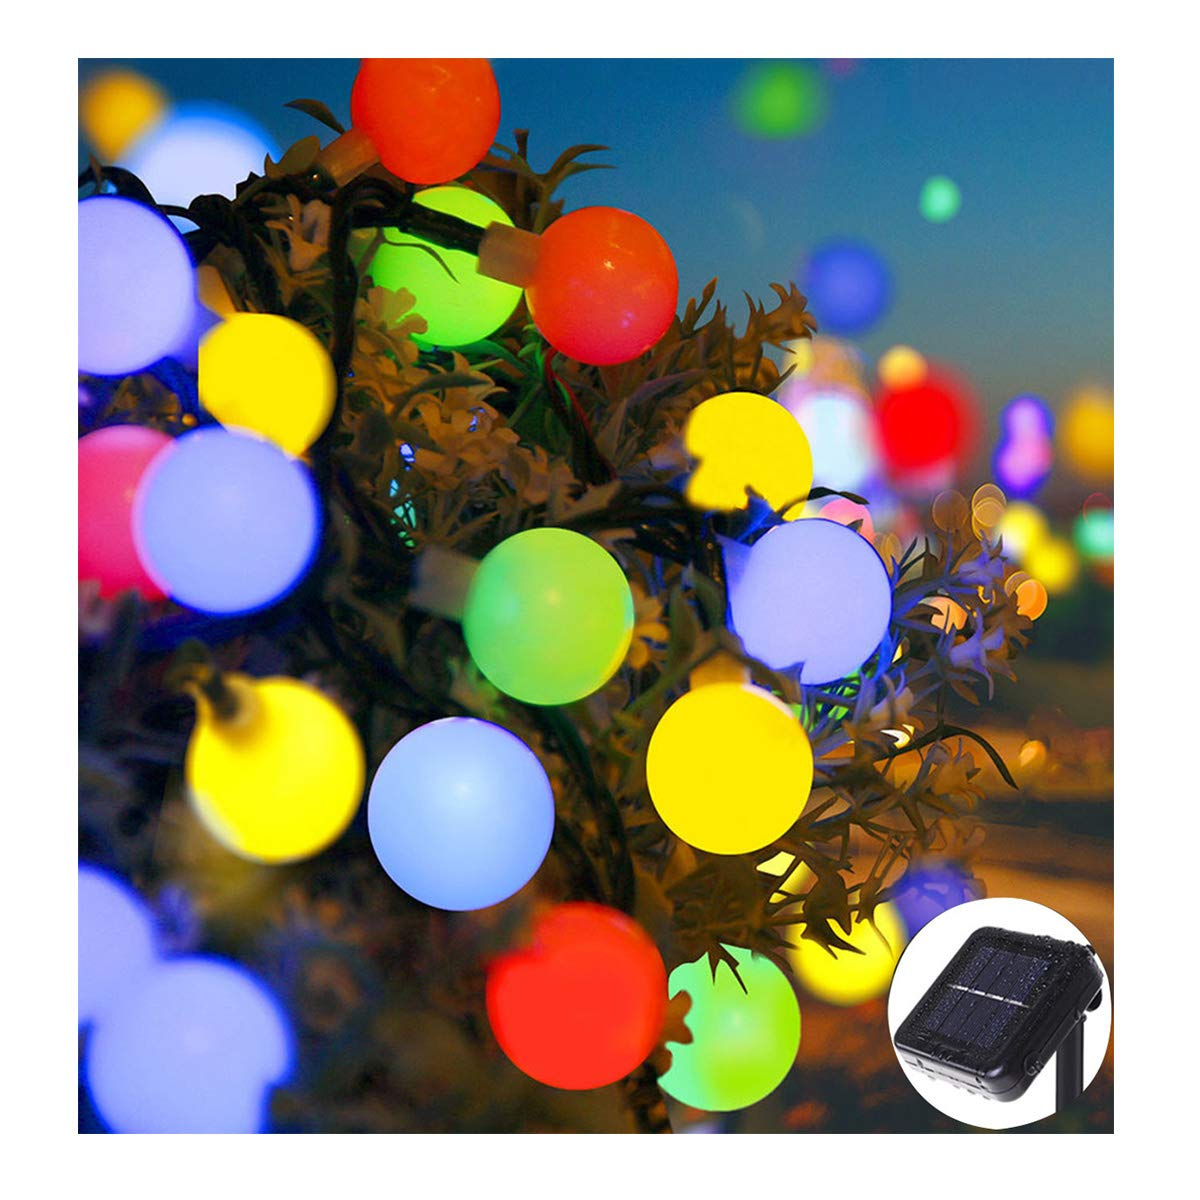 ifOlife Ball String Lights Solar Powered 30 LED 21Ft 8-Mode Waterproof Globe Fairy Lighting for Outdoor Decor,Garden,Chrimas Party,Weddings (Frosted Ball, Multi Color)